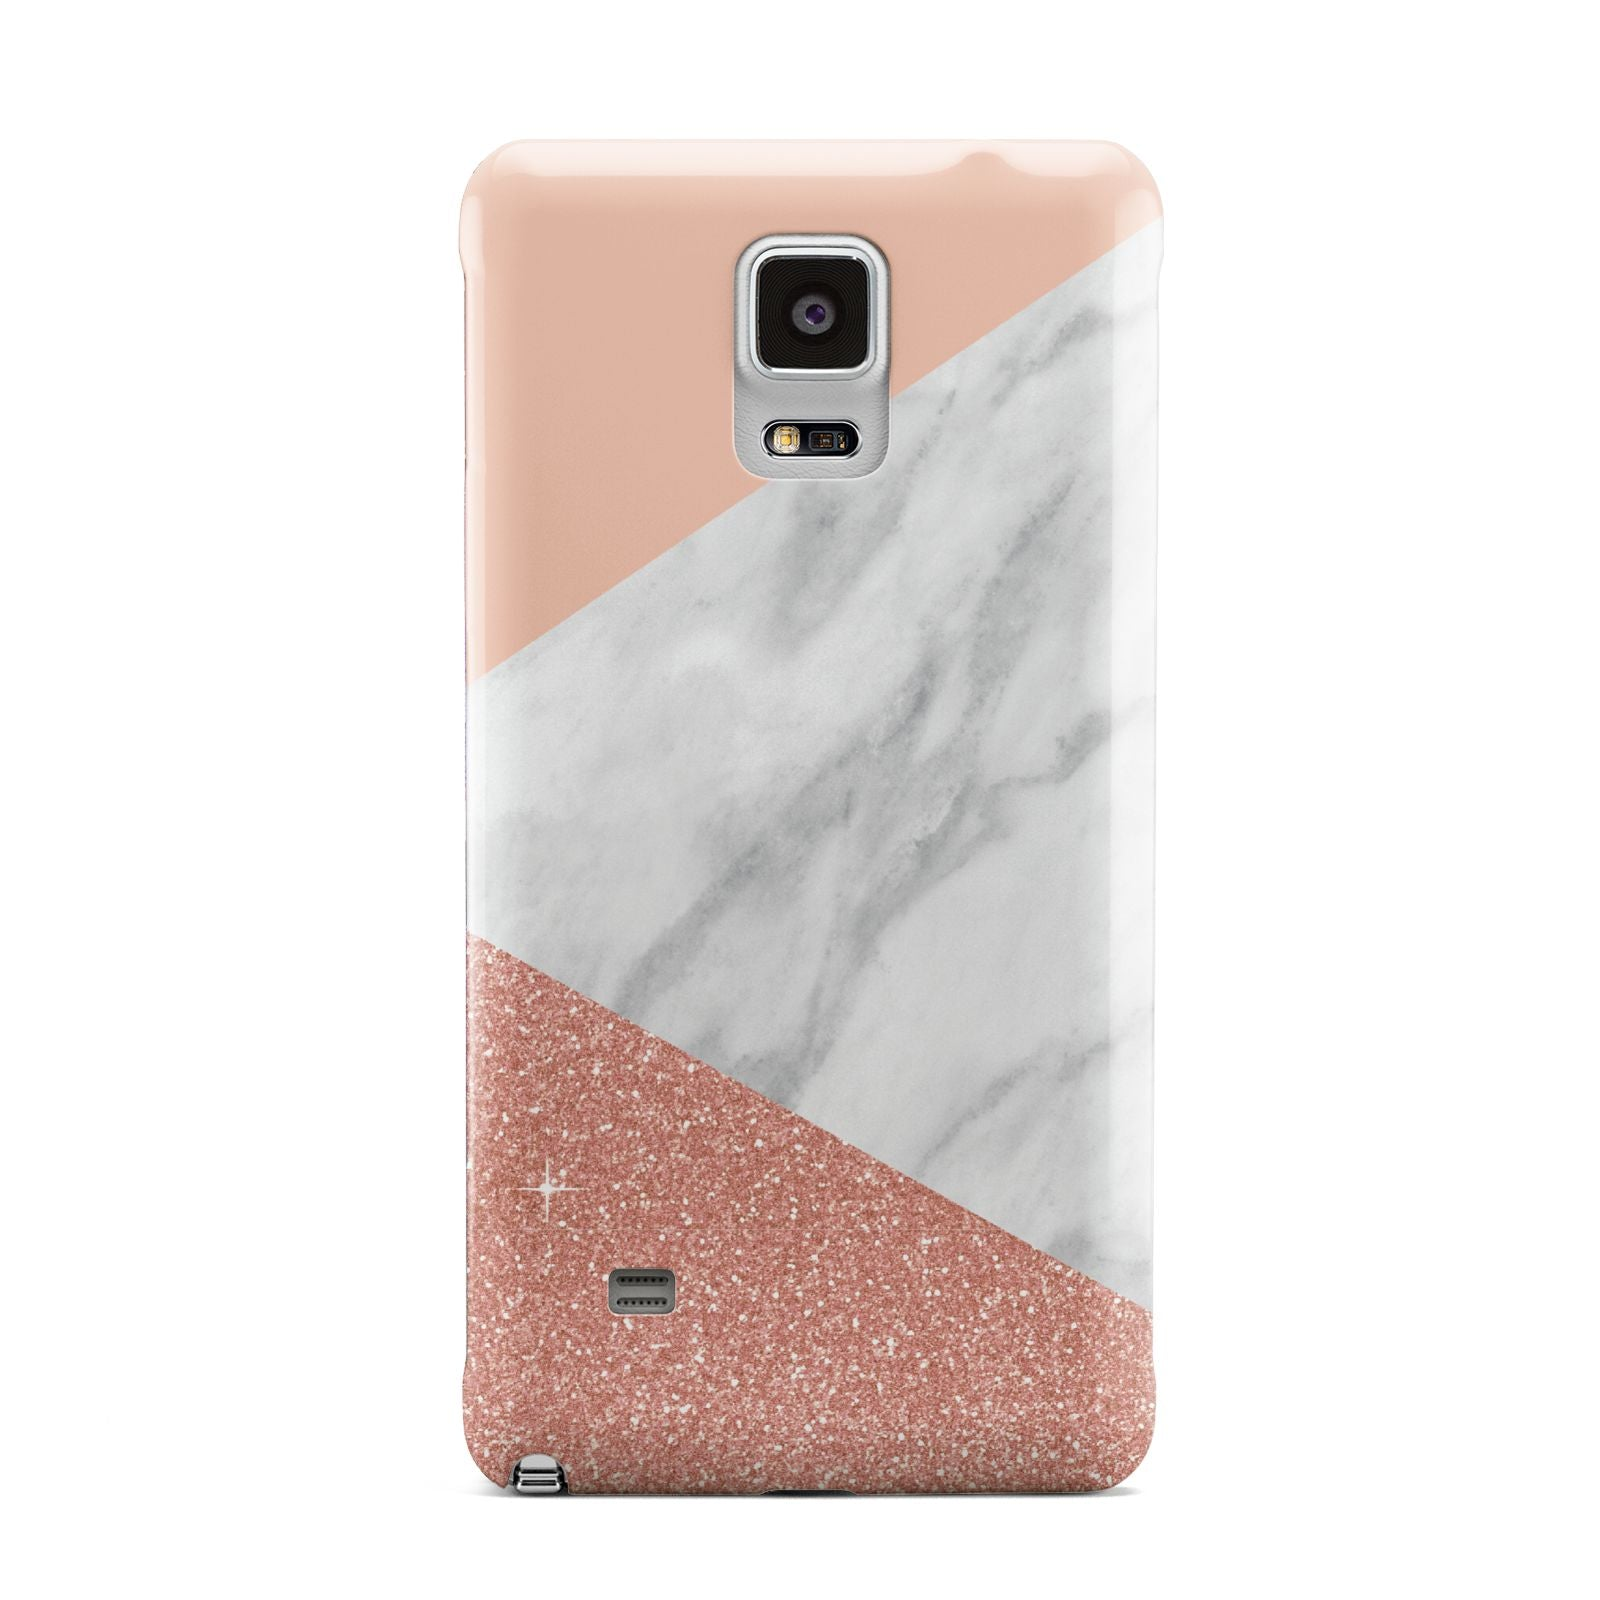 Marble White Rose Gold Samsung Galaxy Note 4 Case